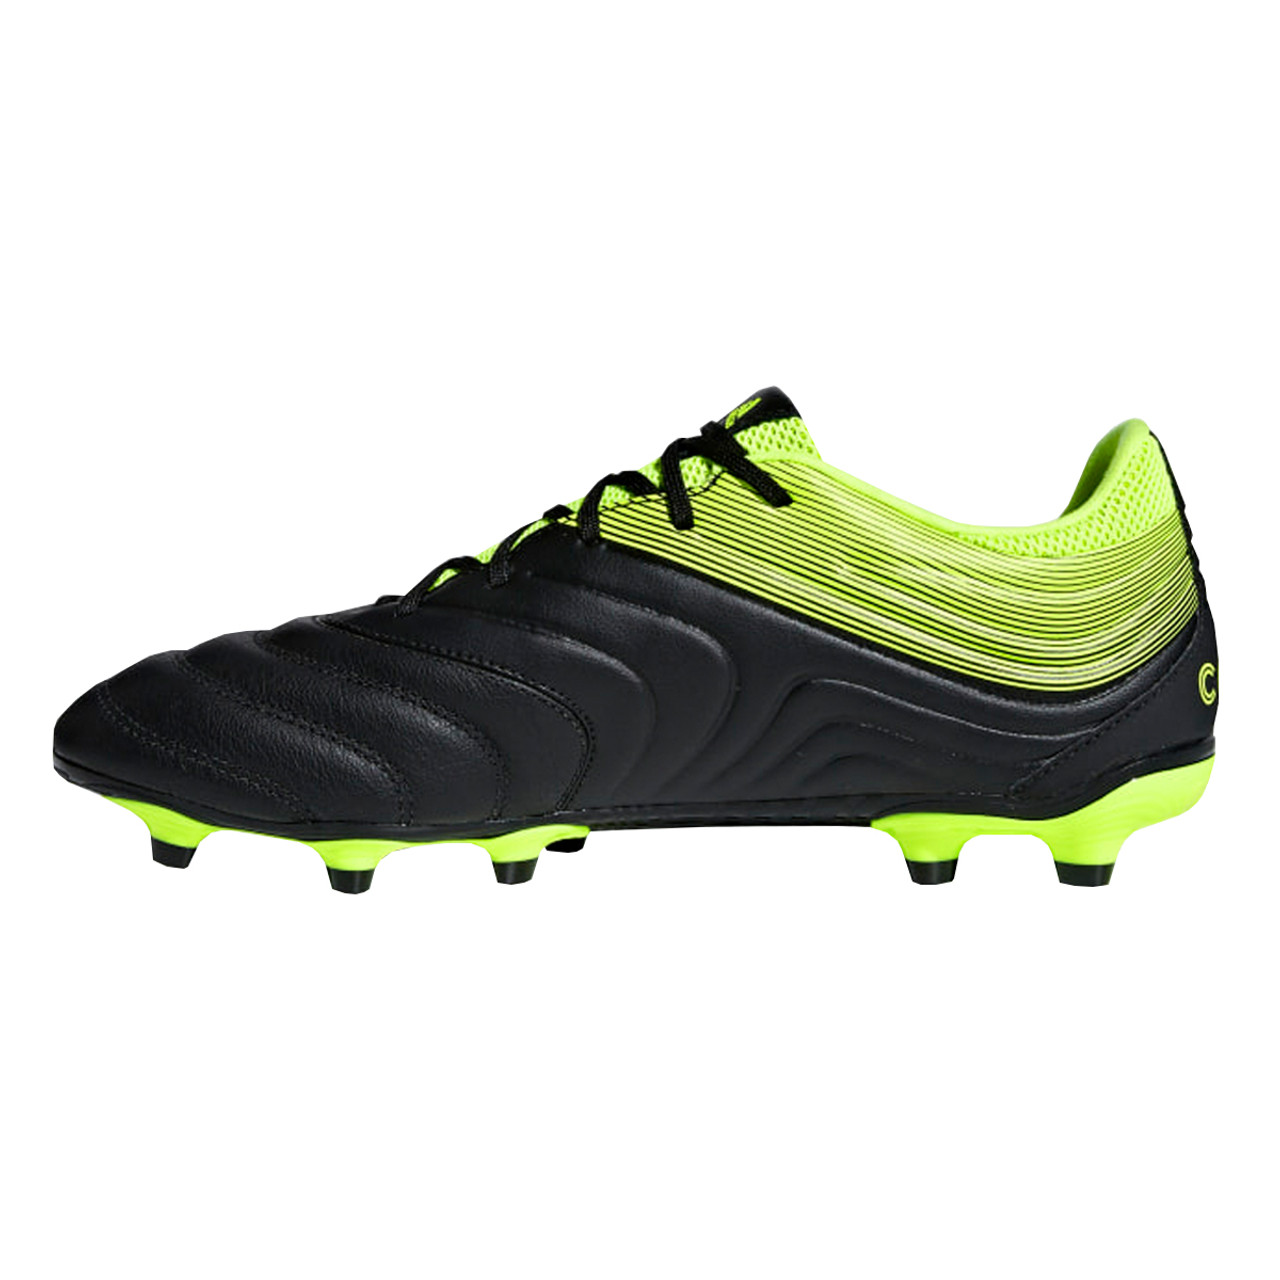 de7541851 ... Adidas Copa 19.3 FG Men s Soccer Cleats BB8090 - Black